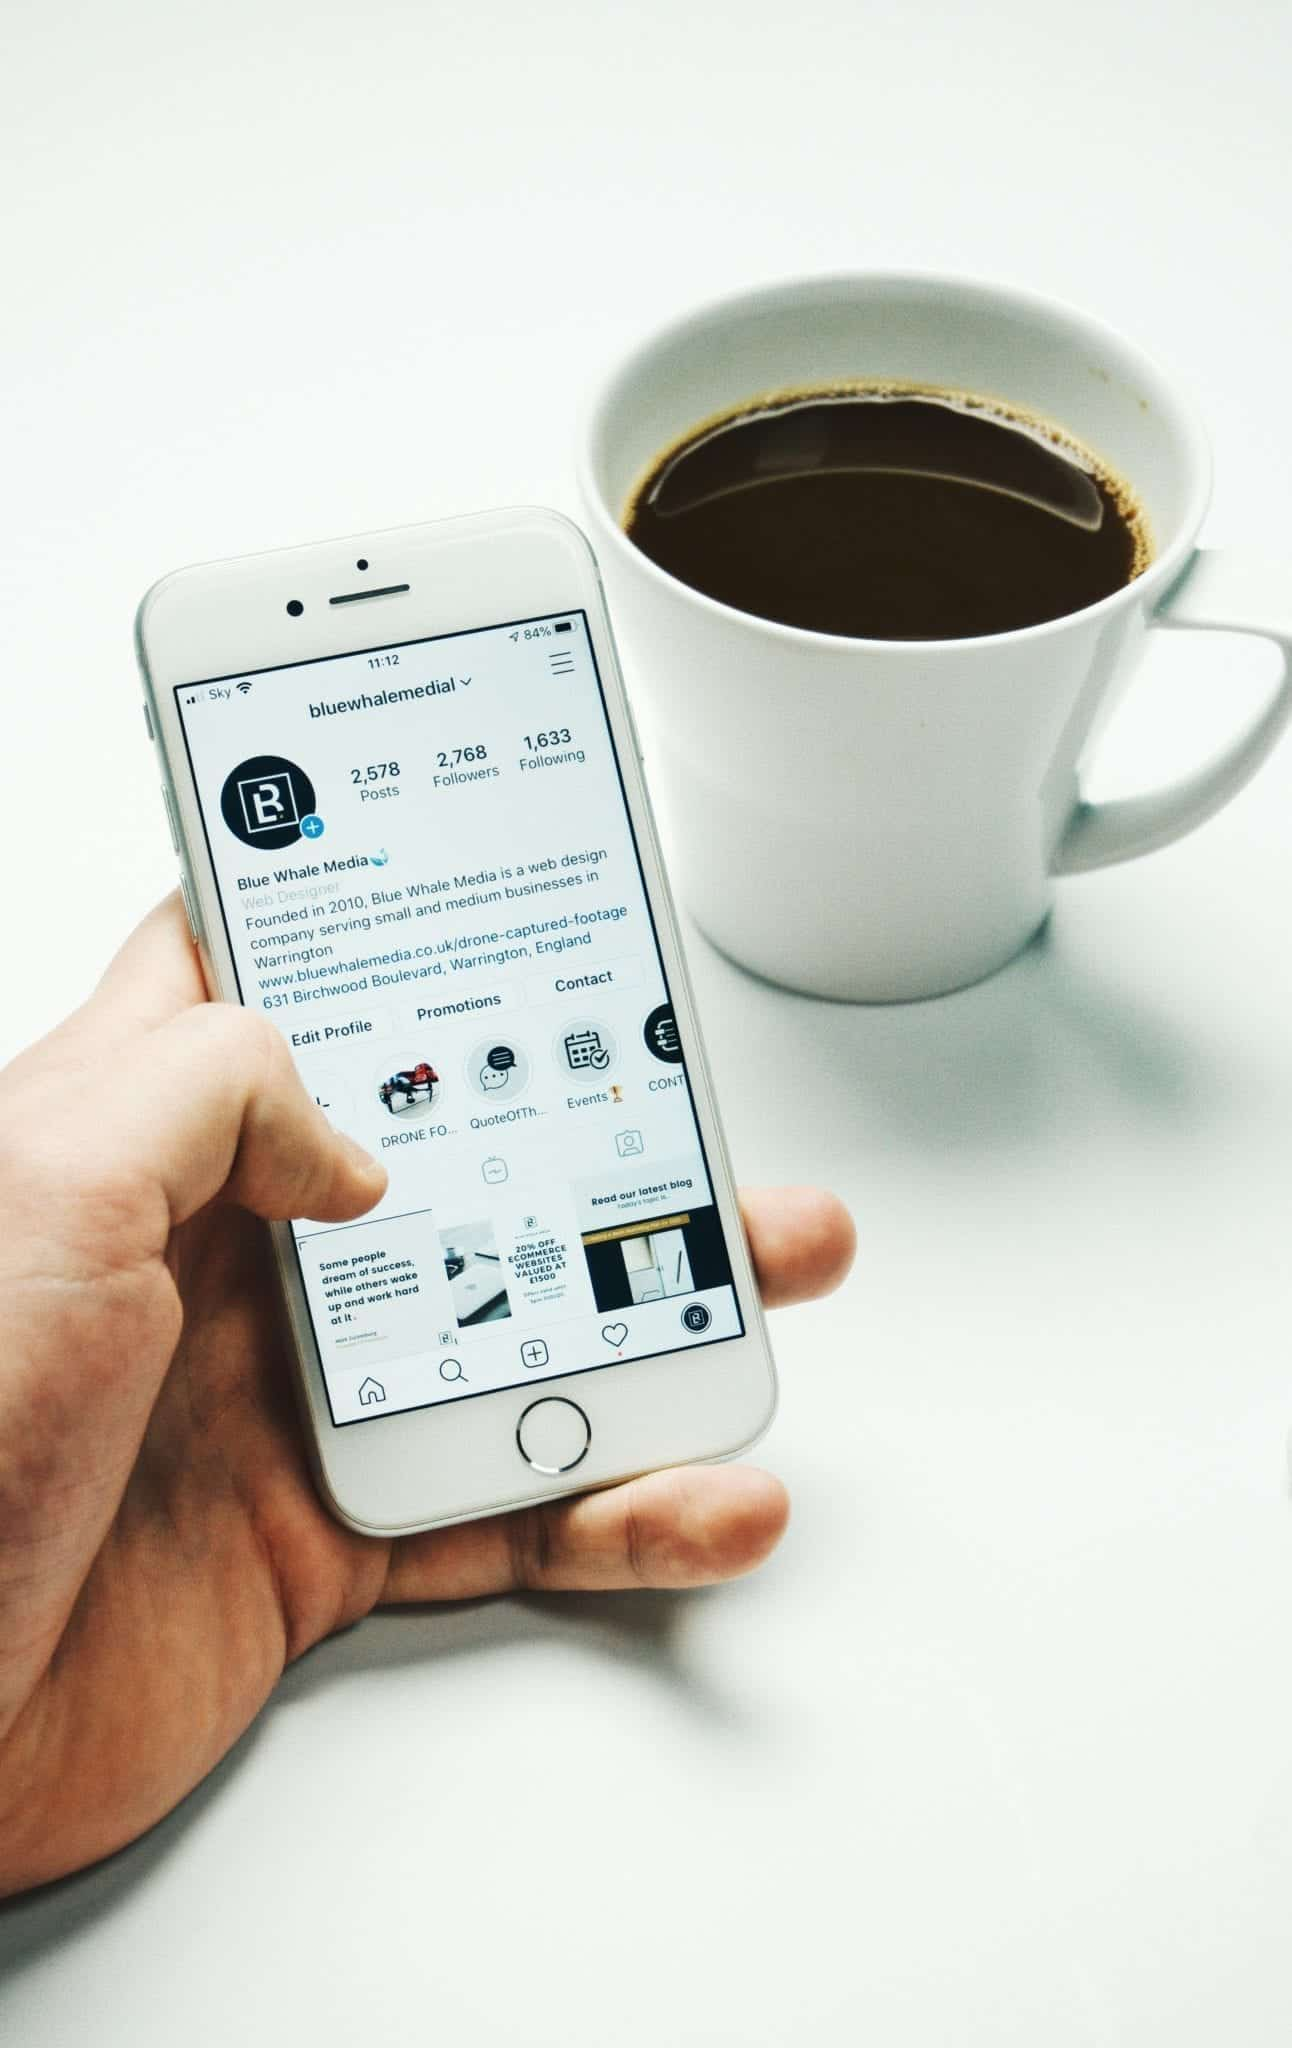 Keep up to date with digital marketing